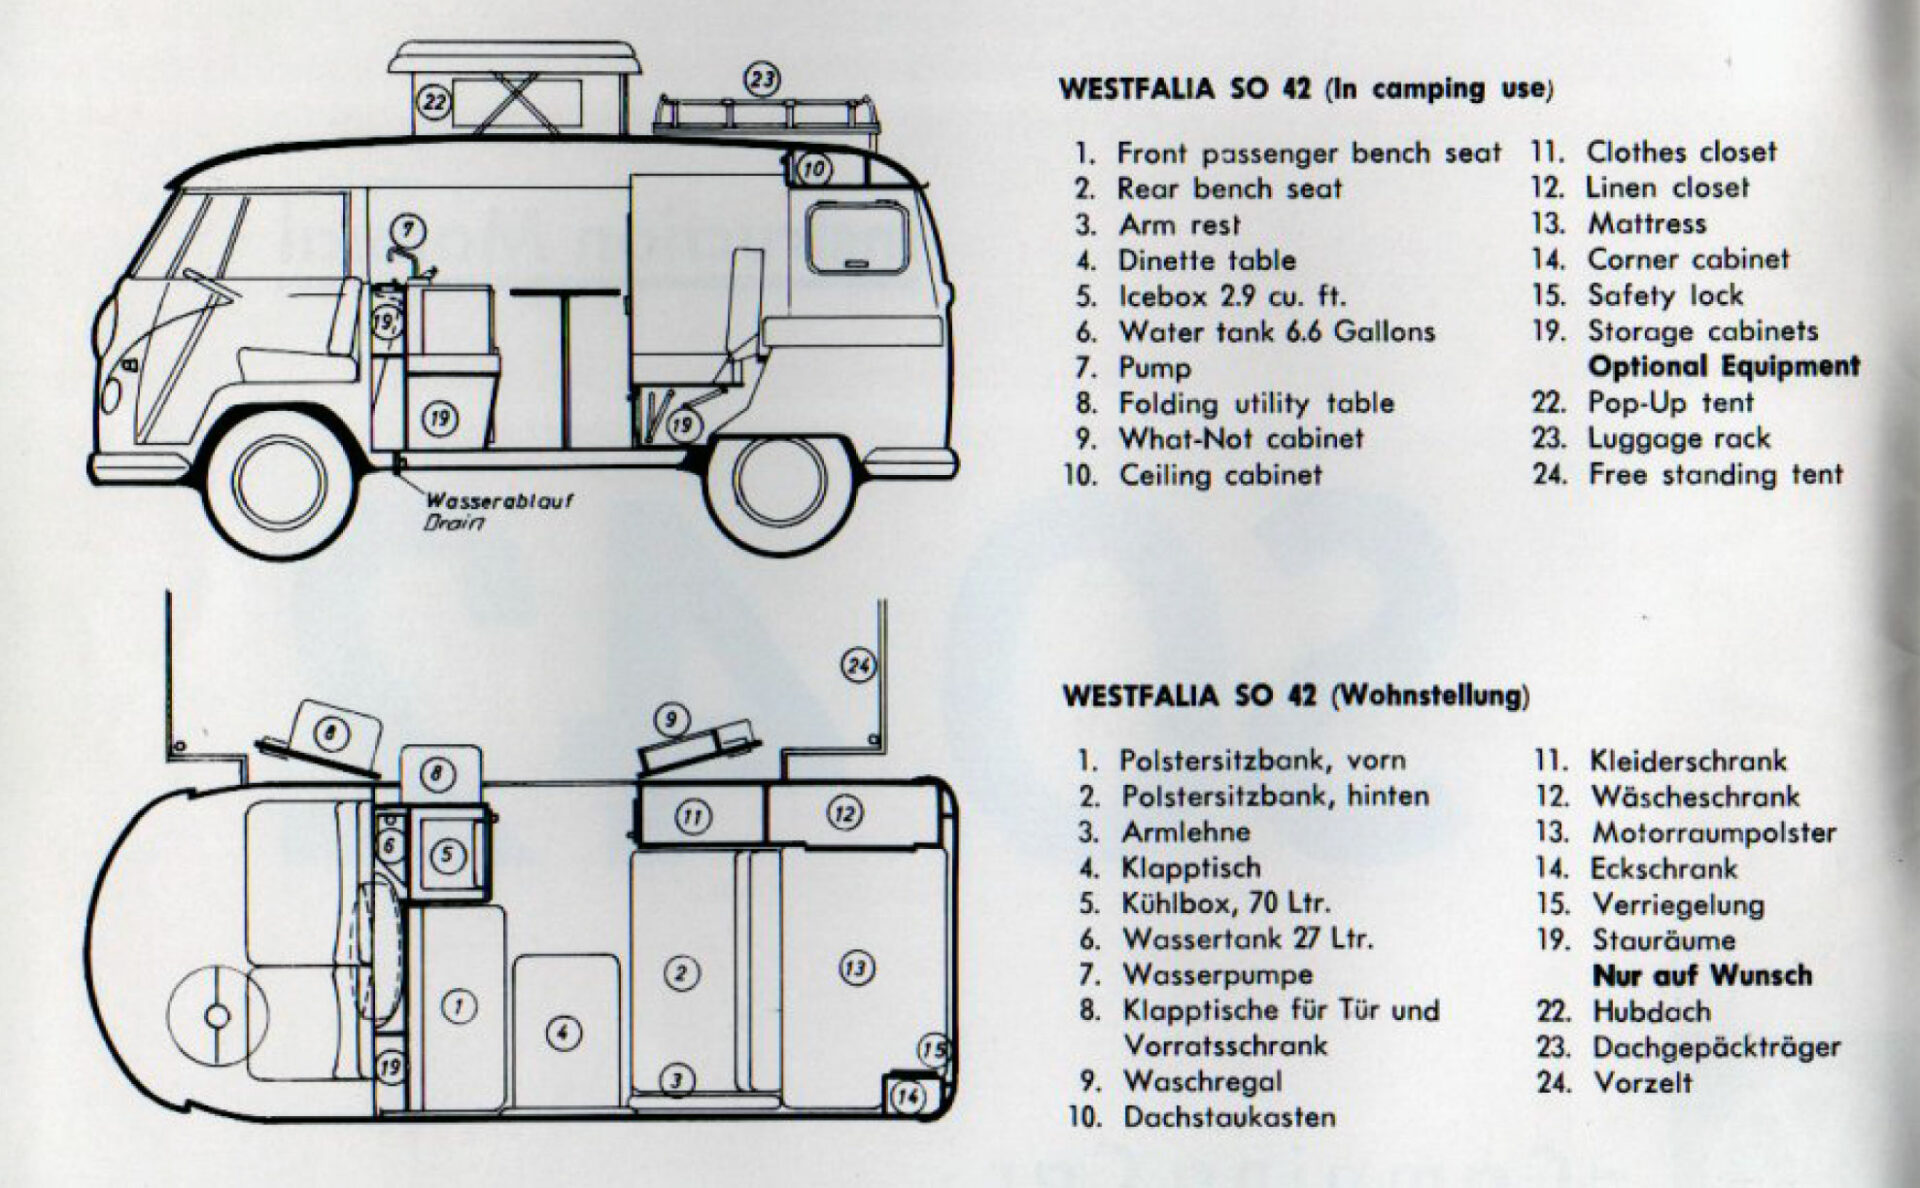 Manuel Westfalia SO42